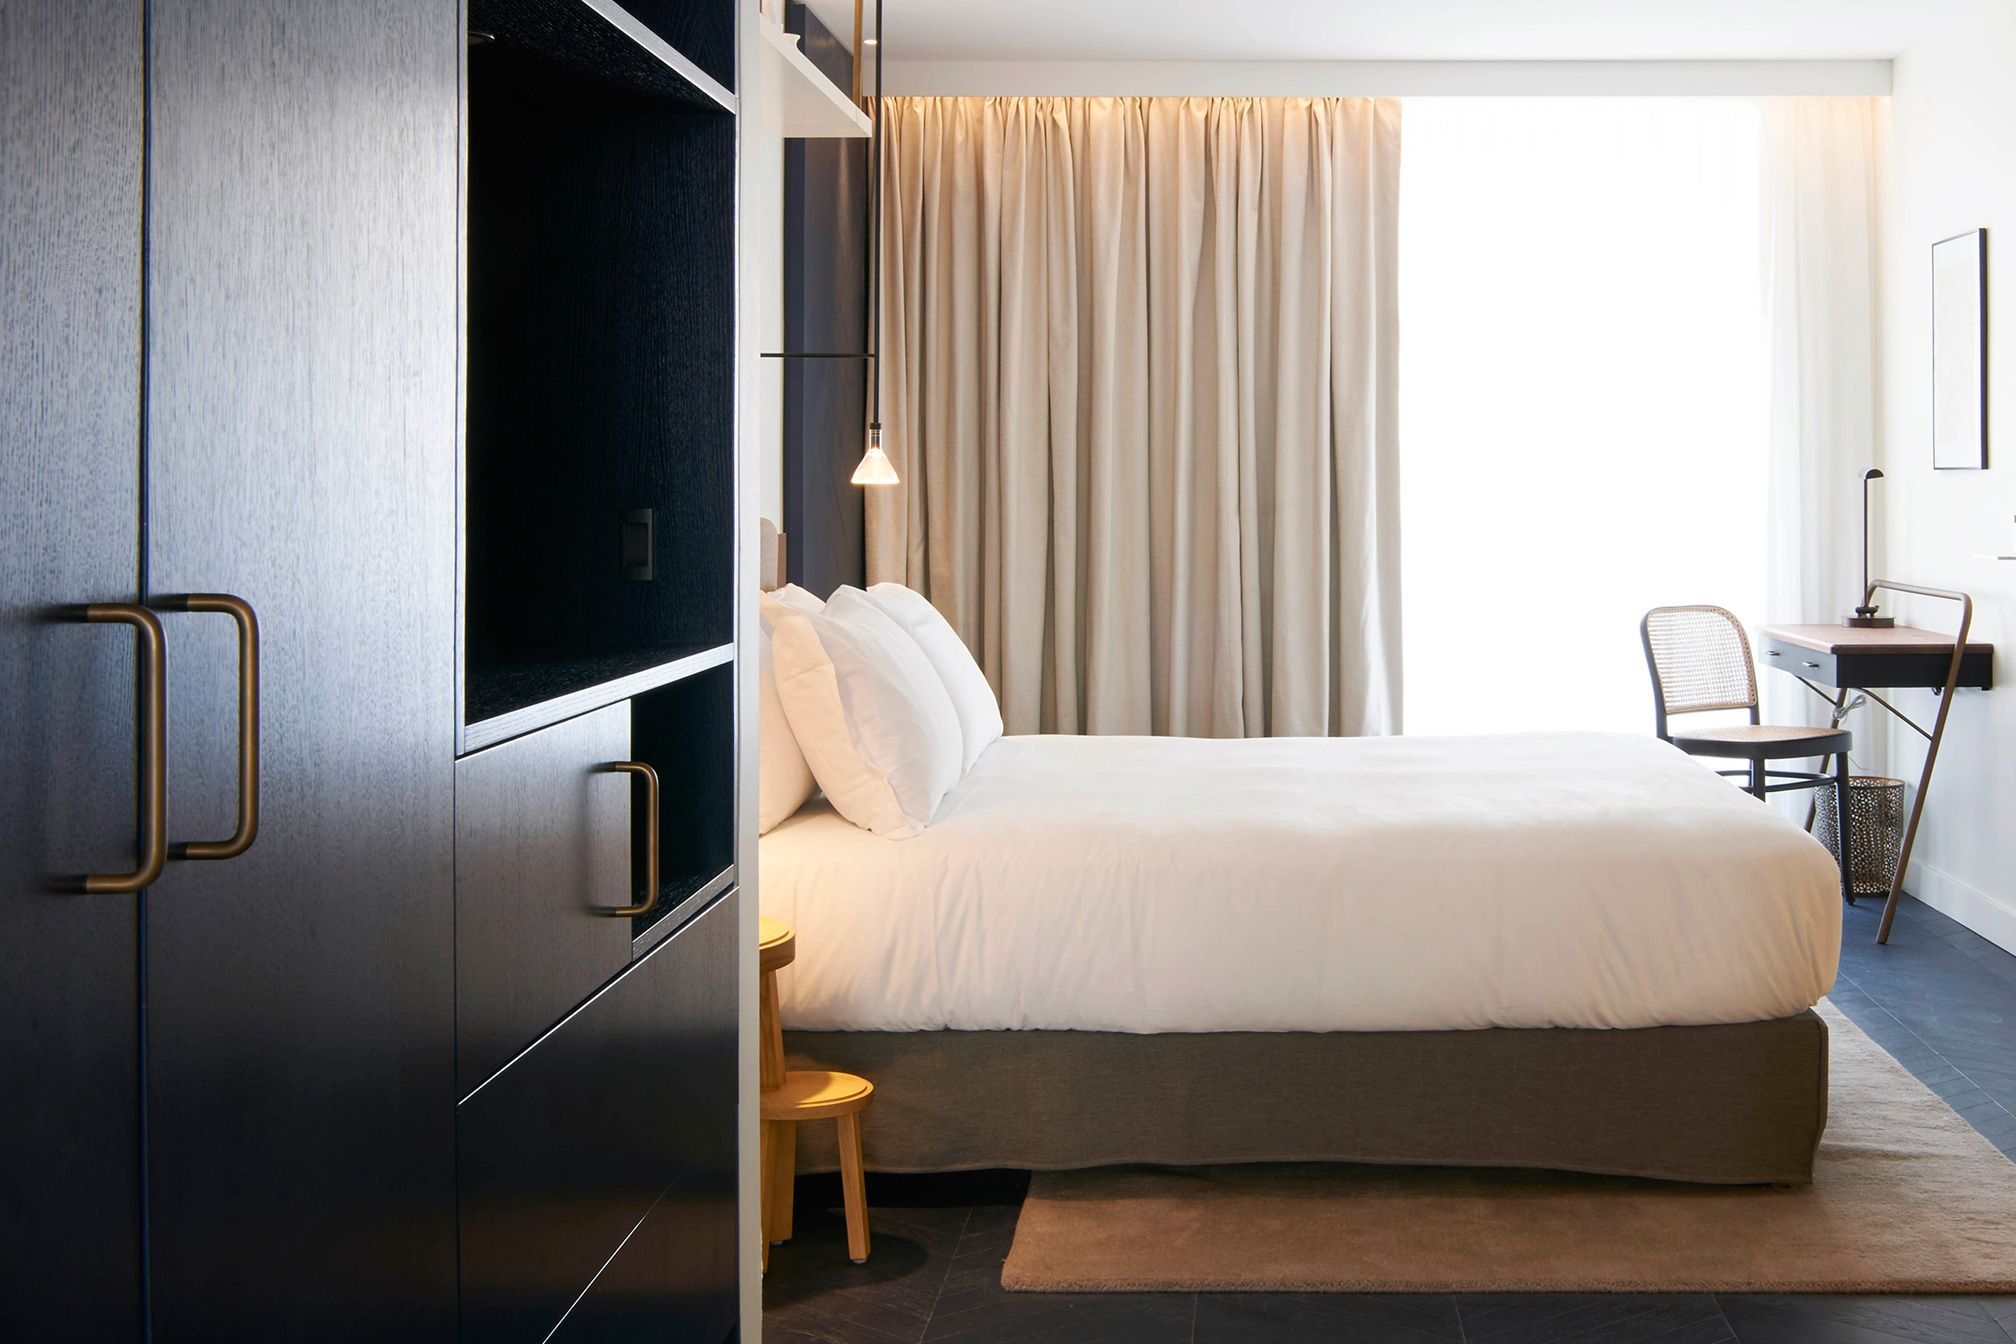 Boutique Made Paris Amastan Paris Is A New Kind Of Boutique Hotel Made To Work Just